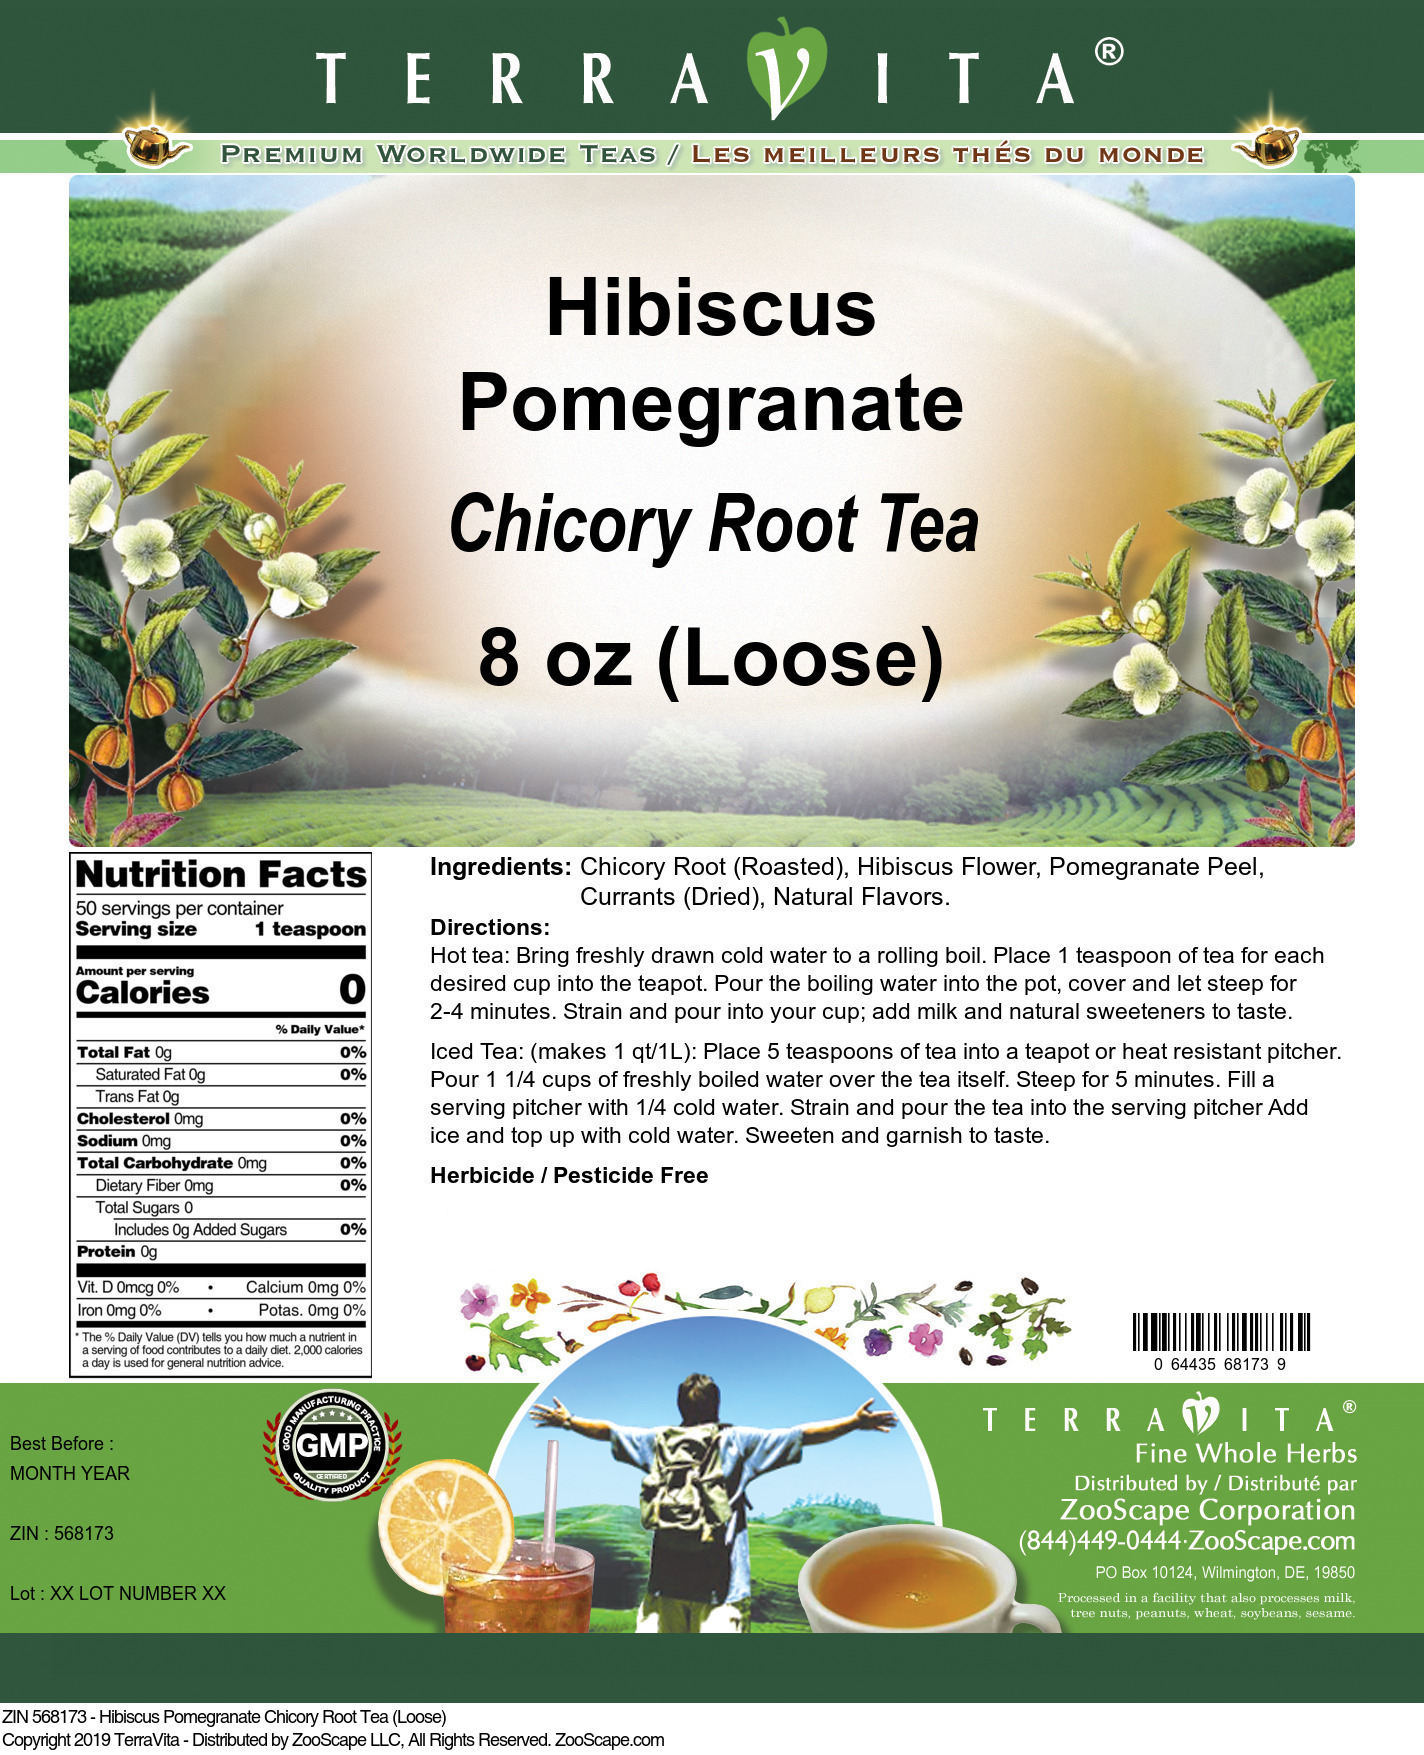 Hibiscus Pomegranate Chicory Root Tea (Loose)